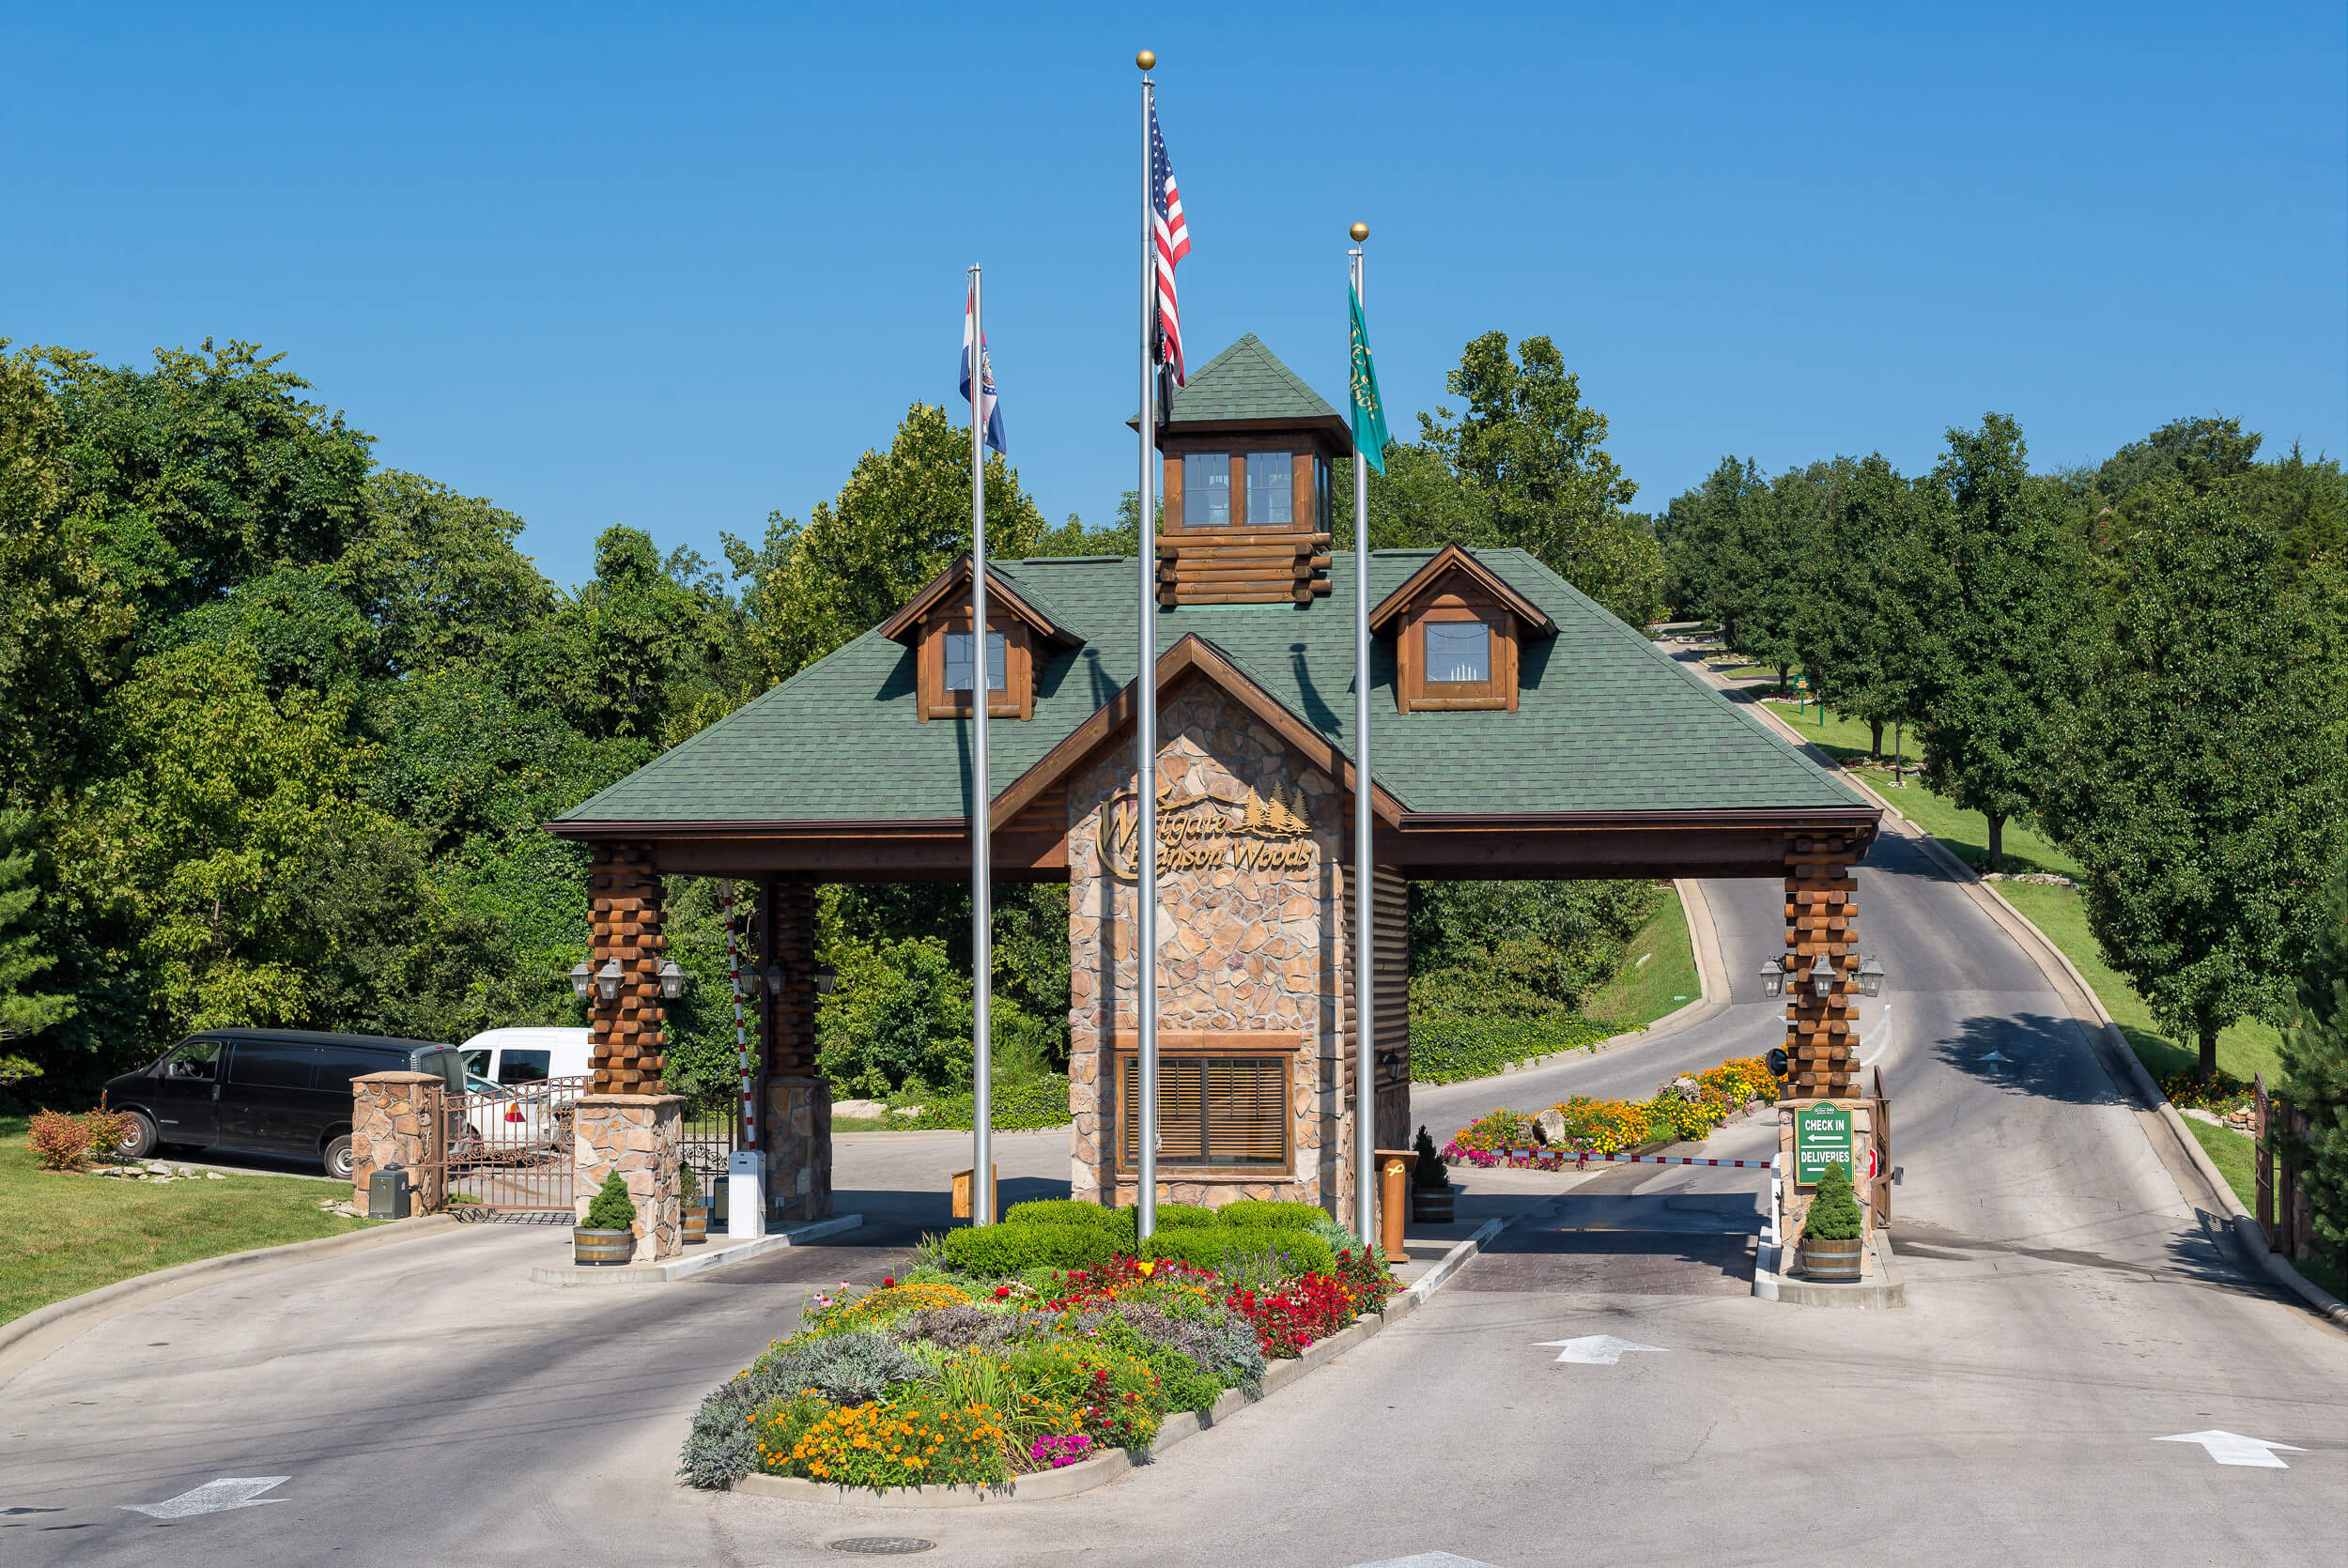 Main entrance to Branson resort | Westgate Branson Woods Resort | Westgate Resorts